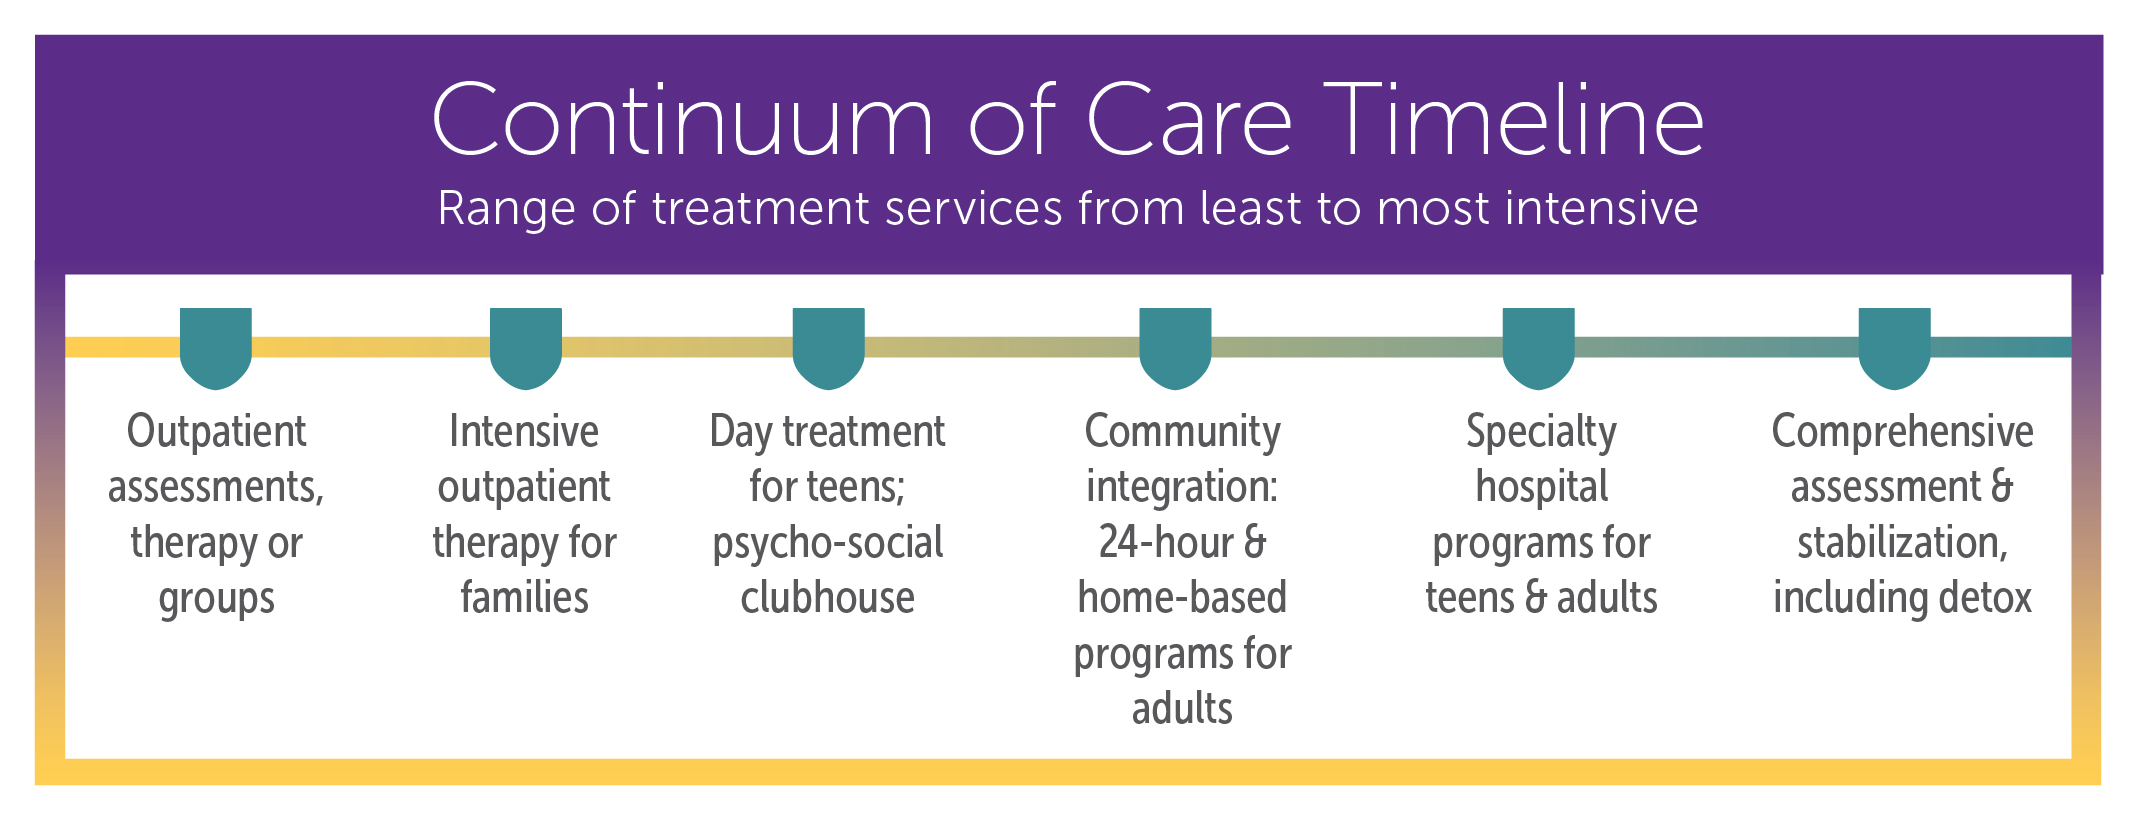 tmccontinuum-of-care2019